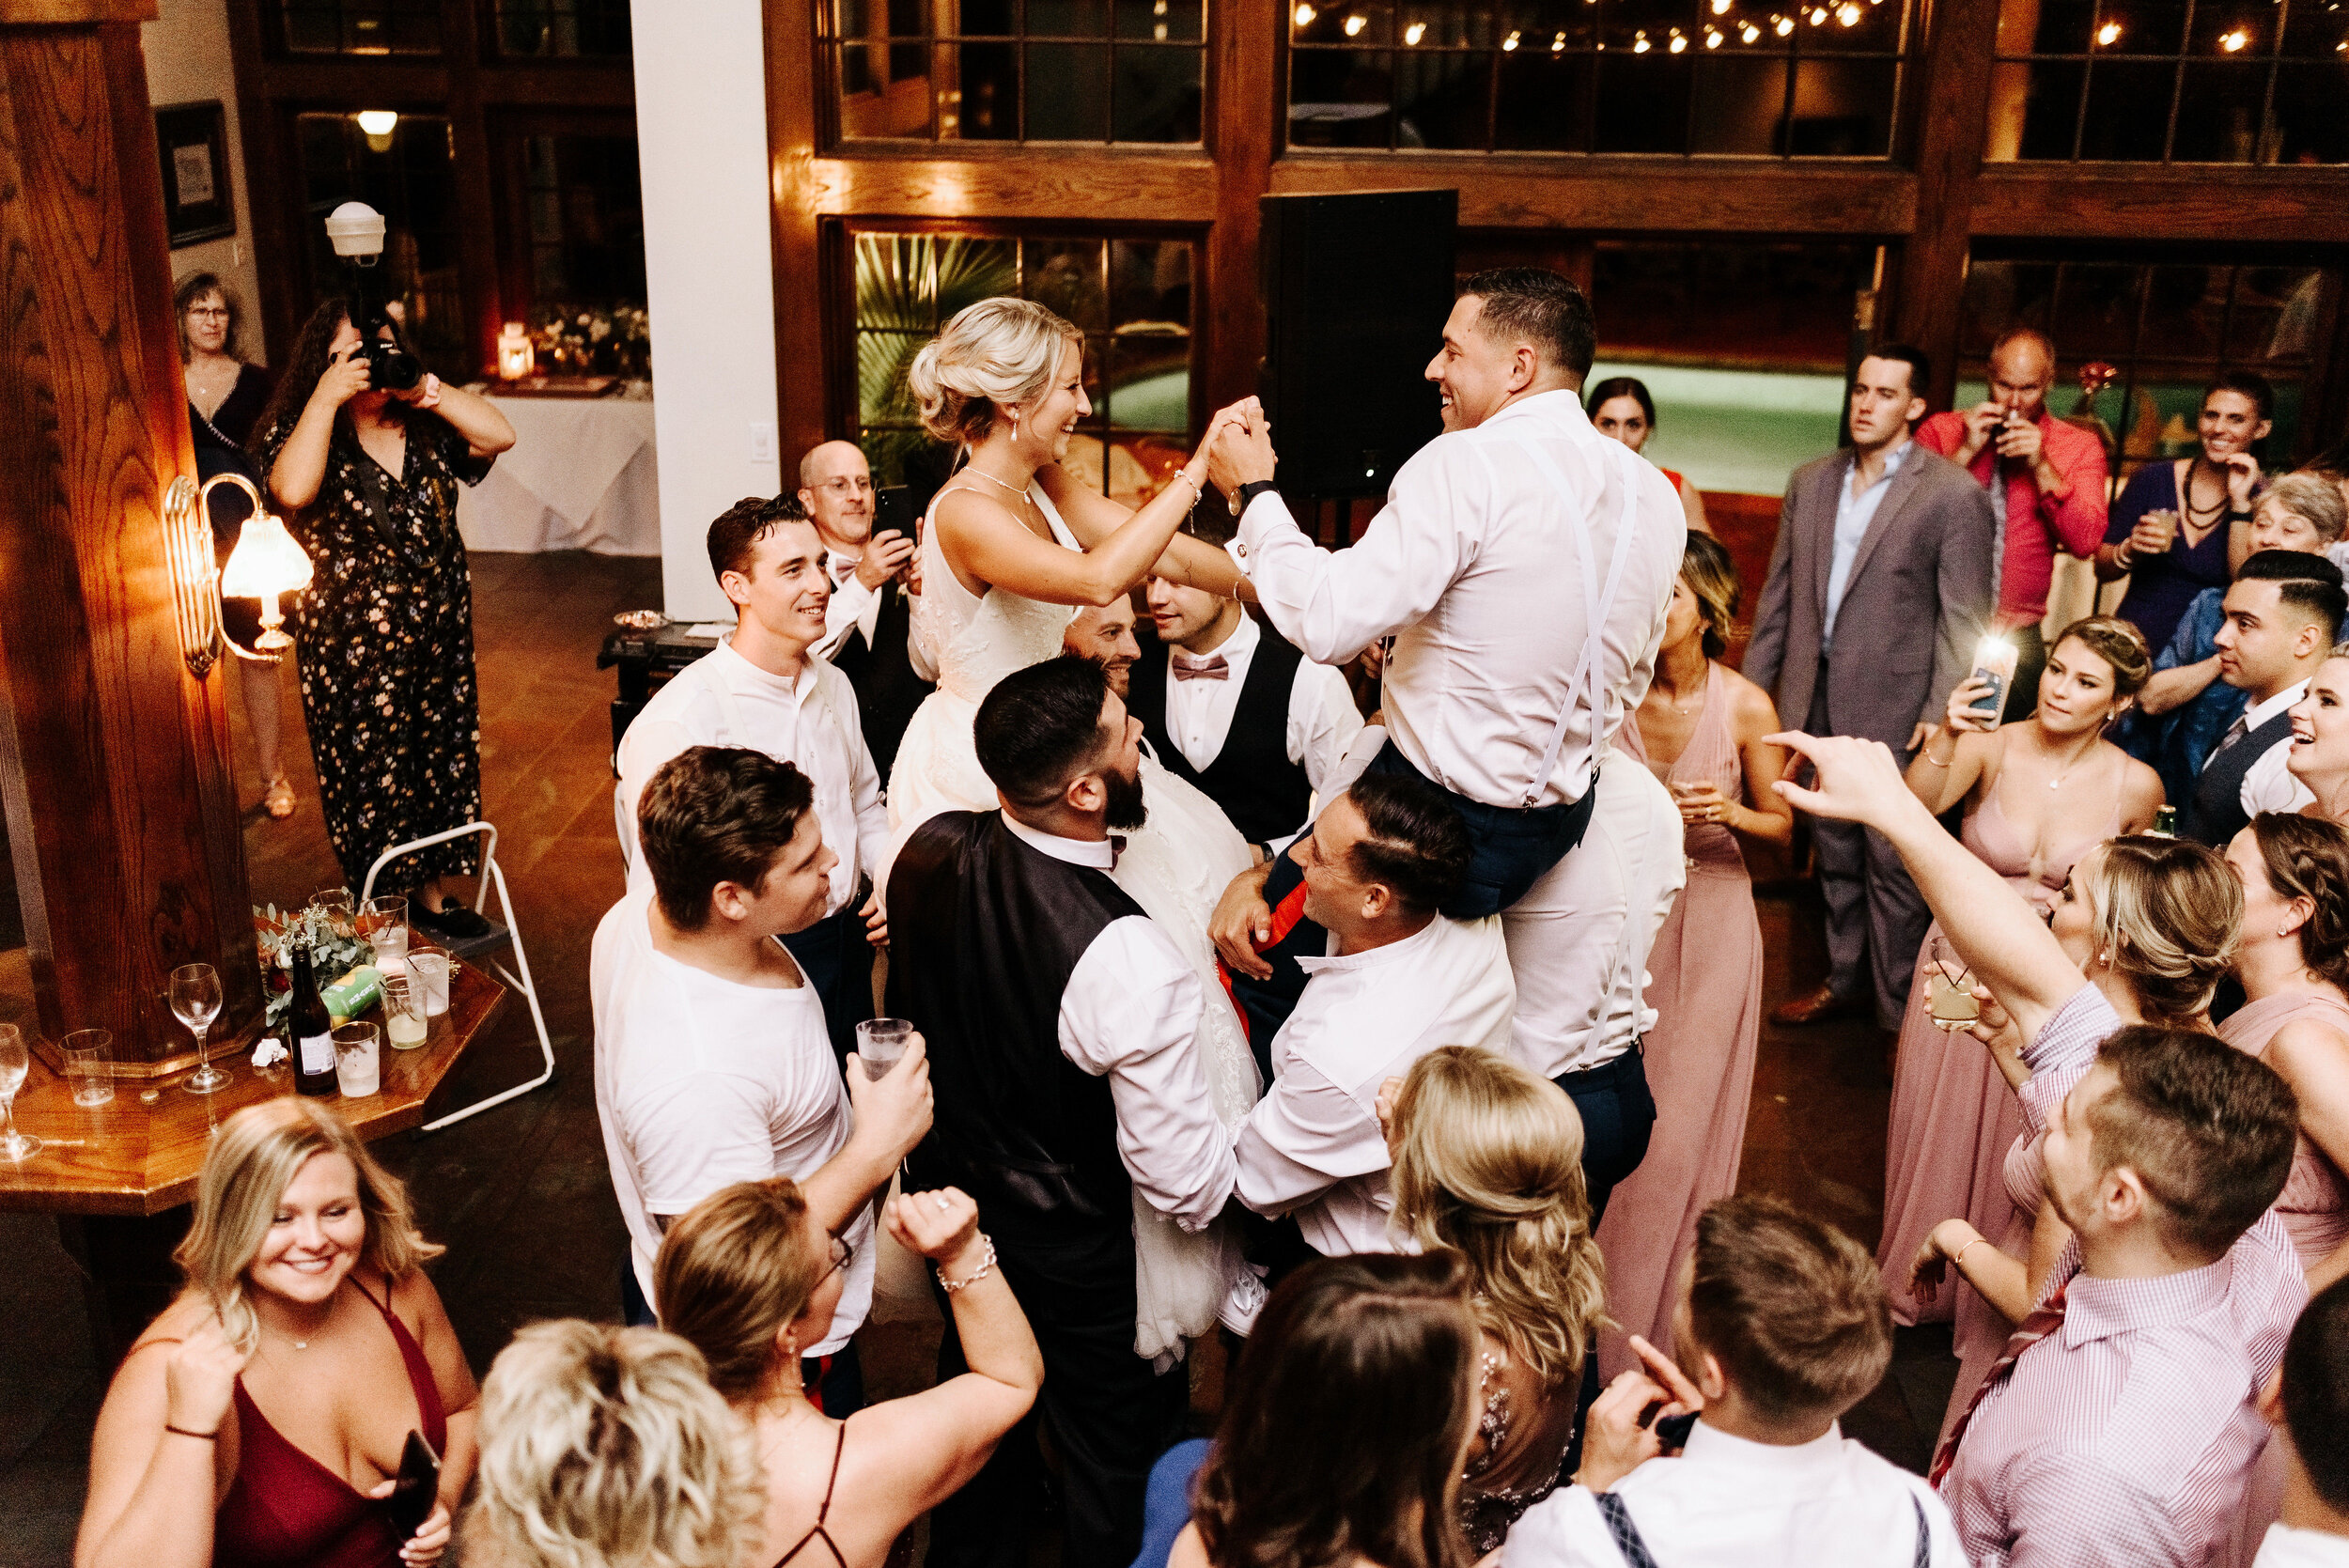 Emily_Mike_Wedding_Celebrations_at_the_Reservoir_Pool_Pavilion_Richmond_Virginia_Wedding_Photographer_Photography_by_V_117.jpg